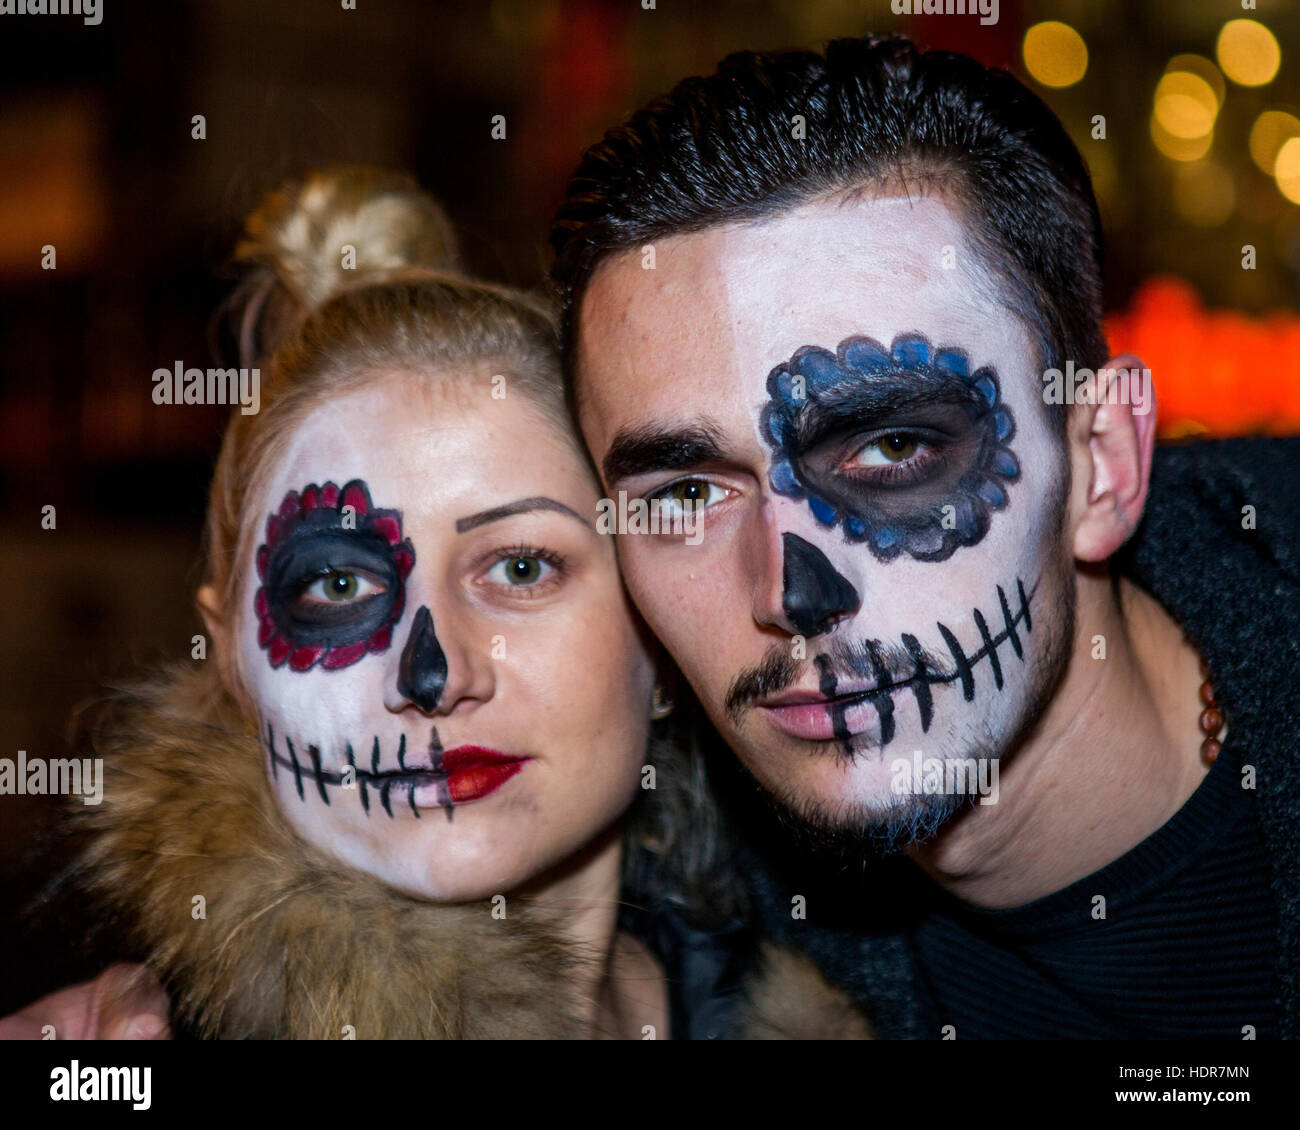 People dressed up for Halloween night on Old Compton Street 343a3dad8c24